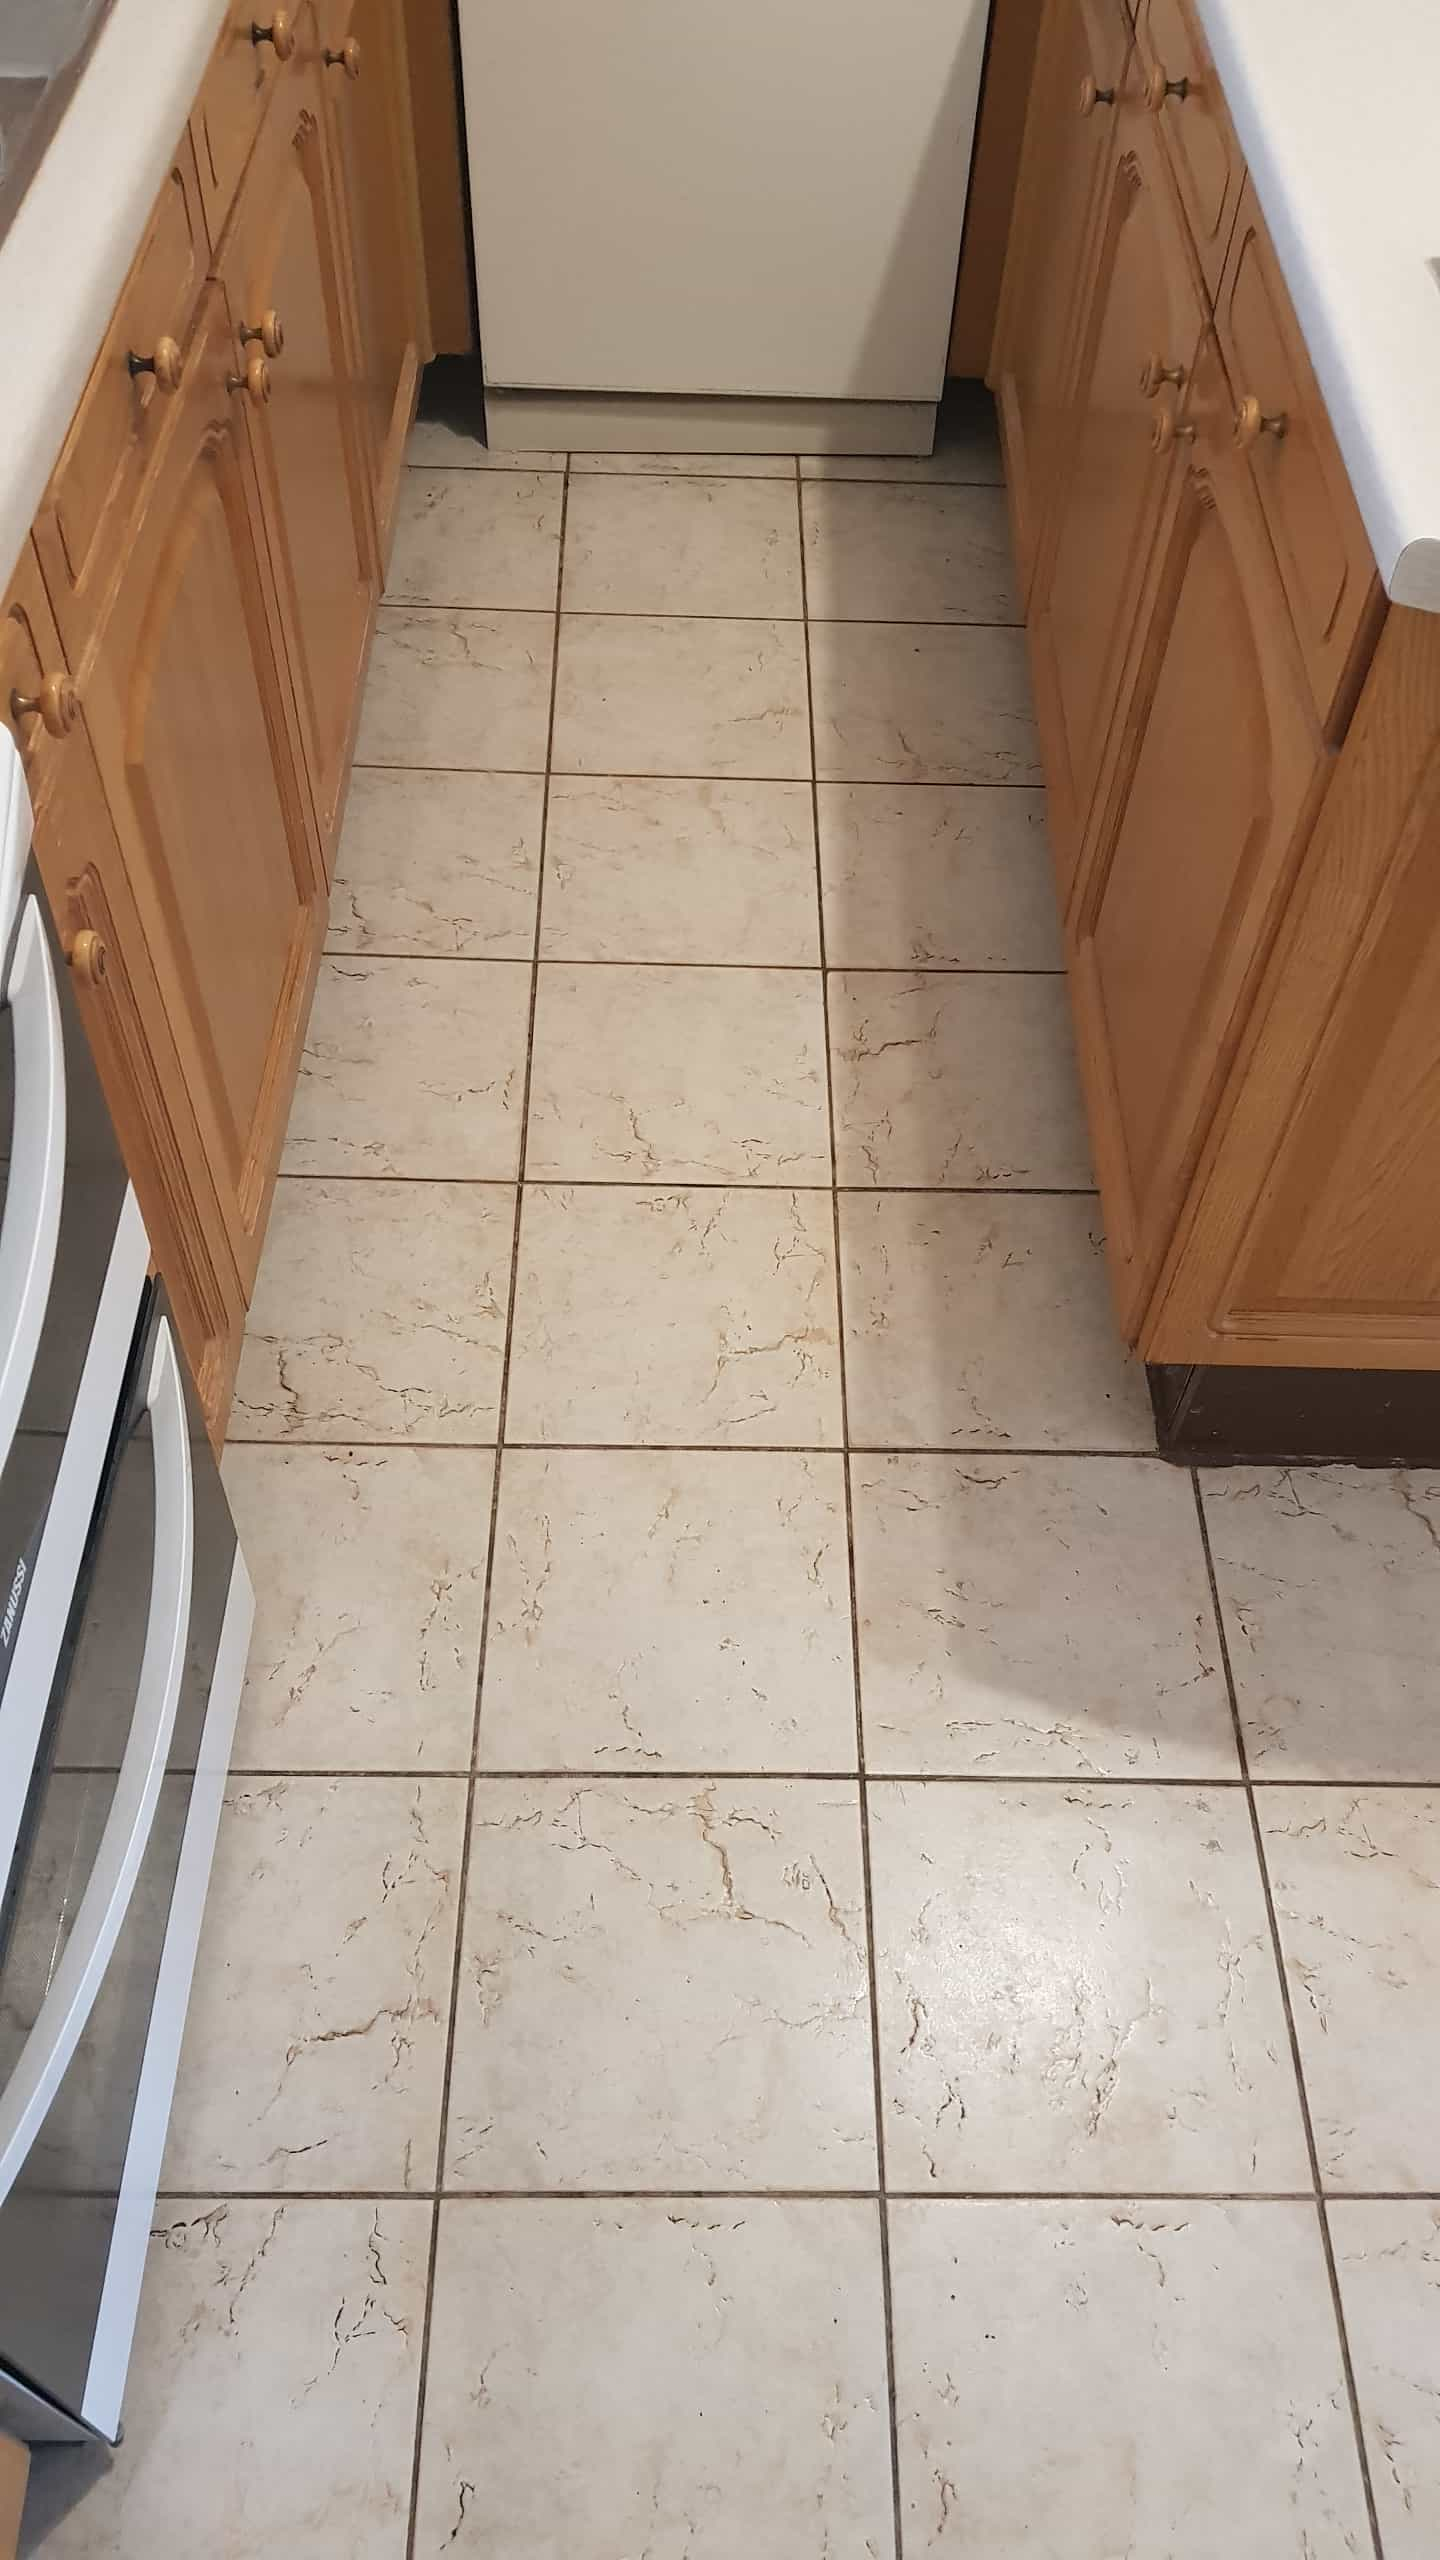 Textured Ceramic Tile Barnsley Before Cleaning